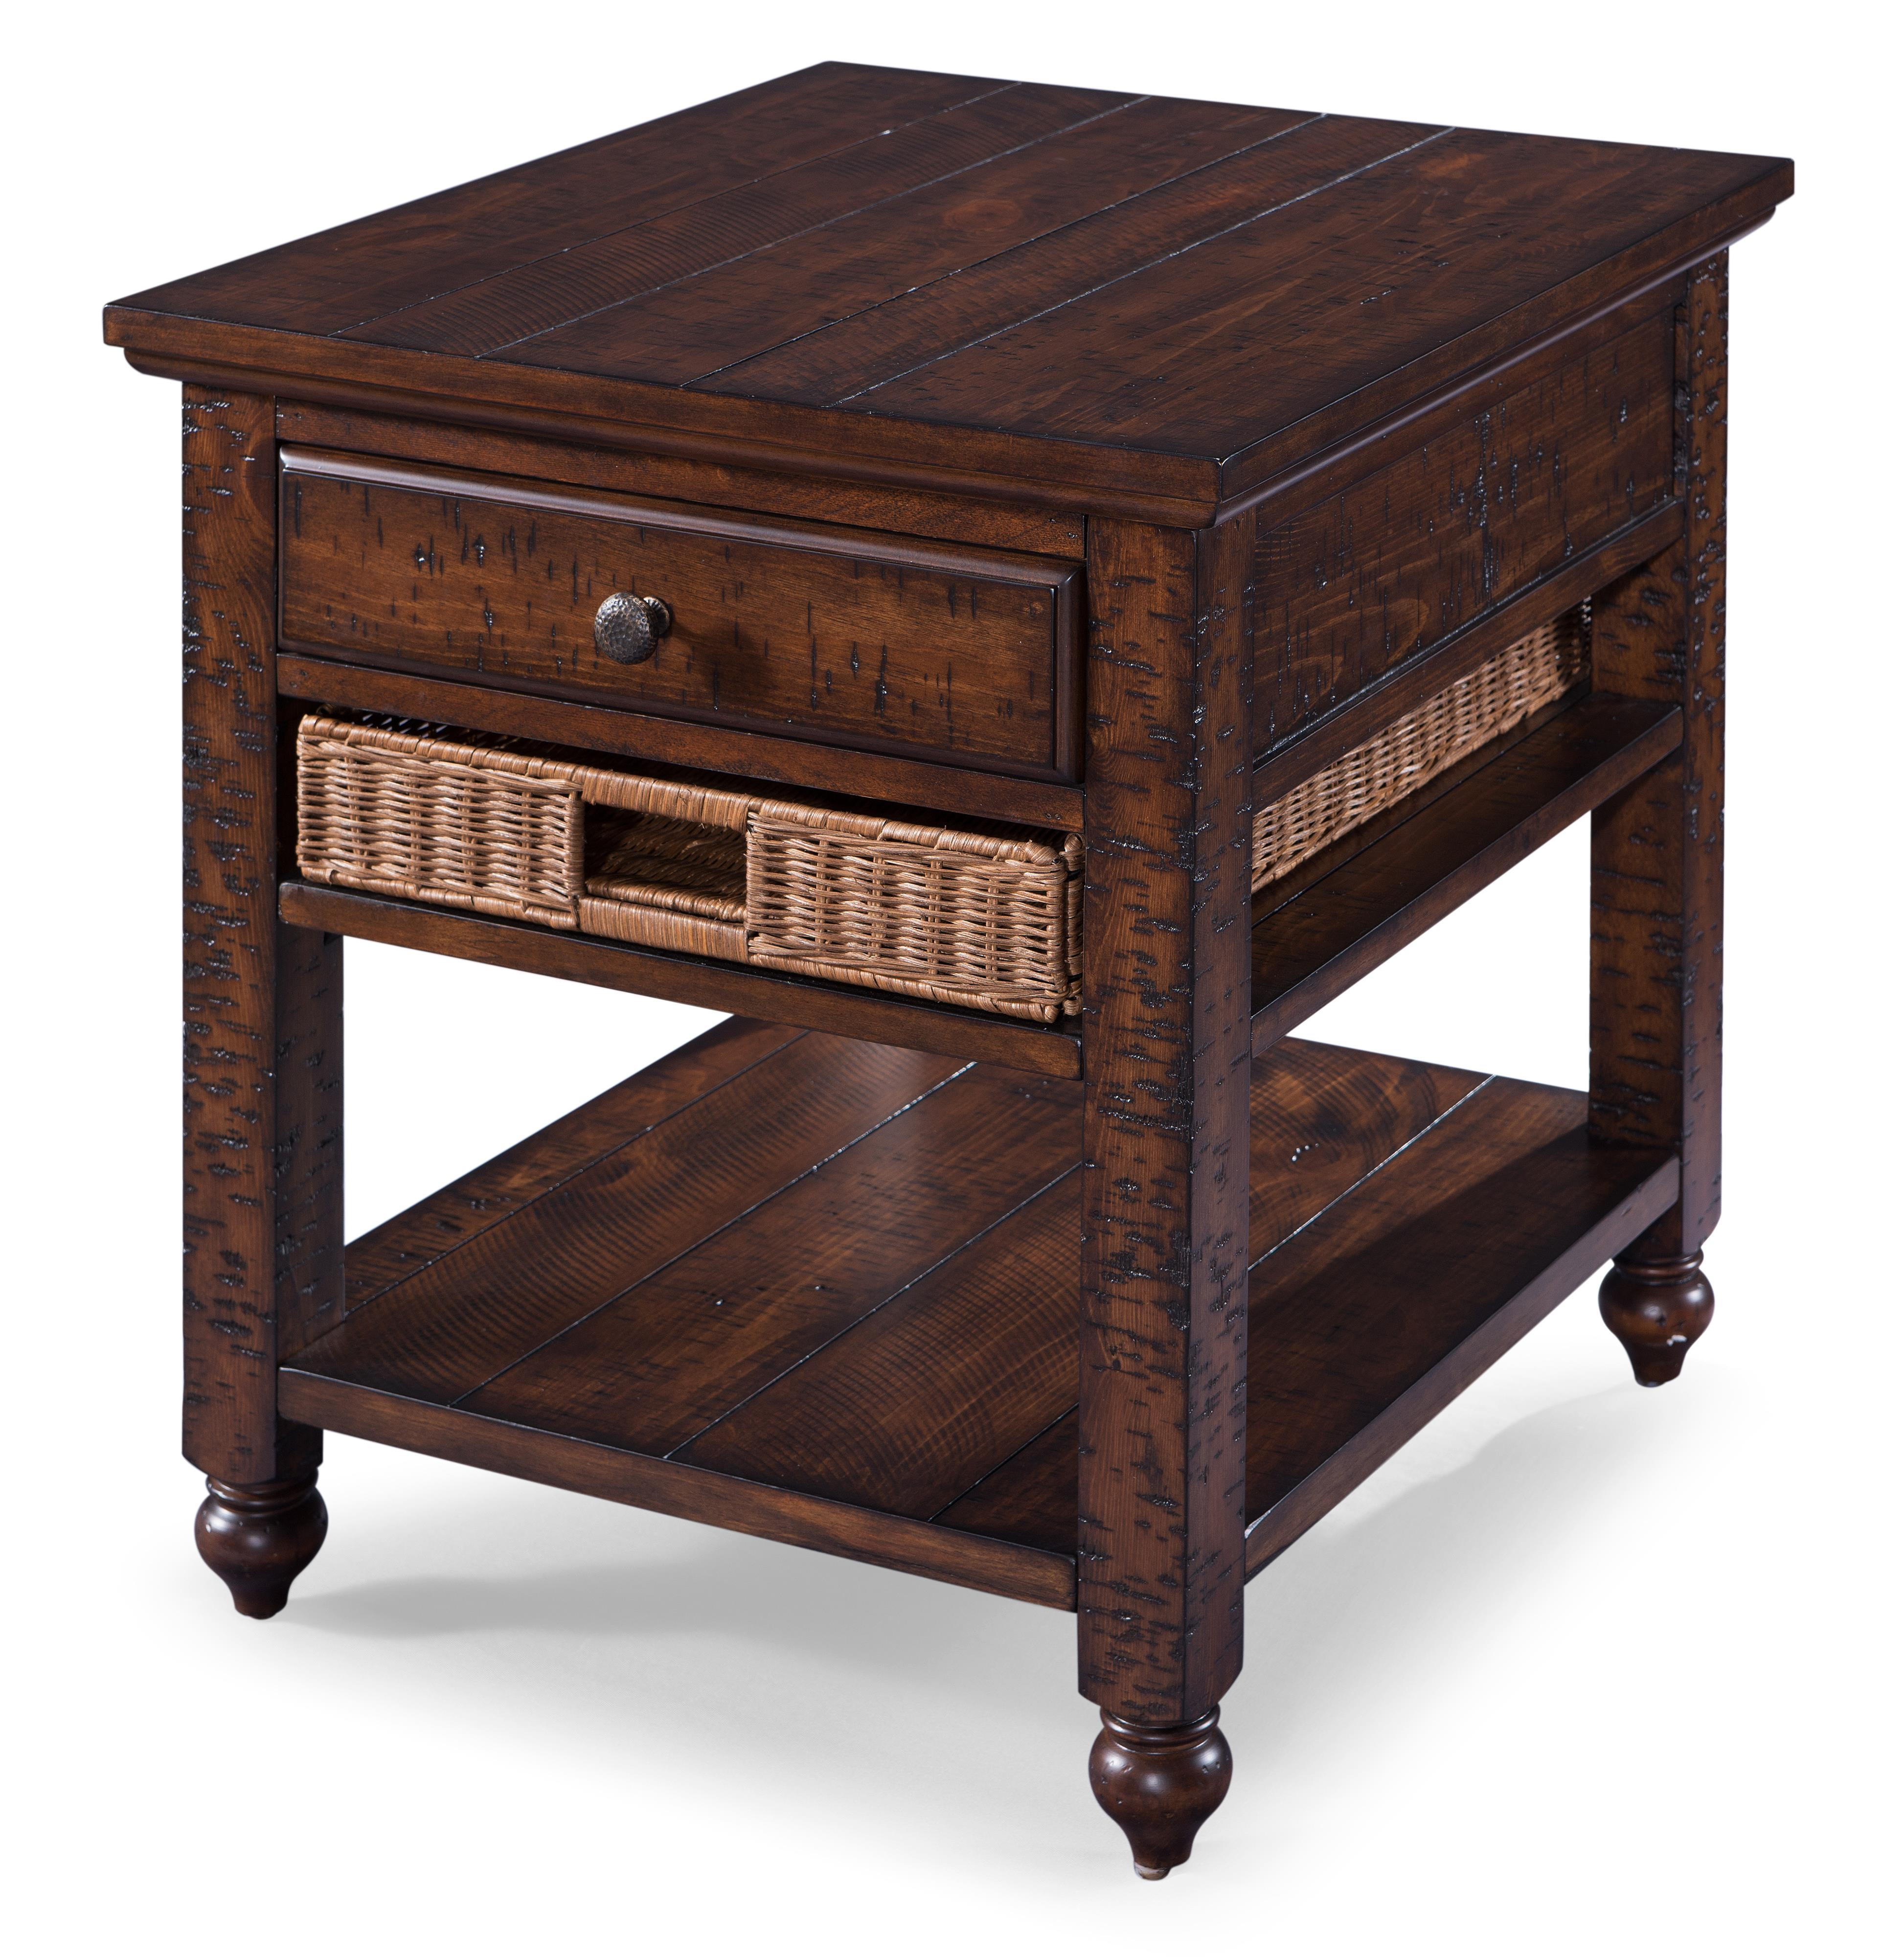 Casual Rectangular End Table with Removable Storage Basket